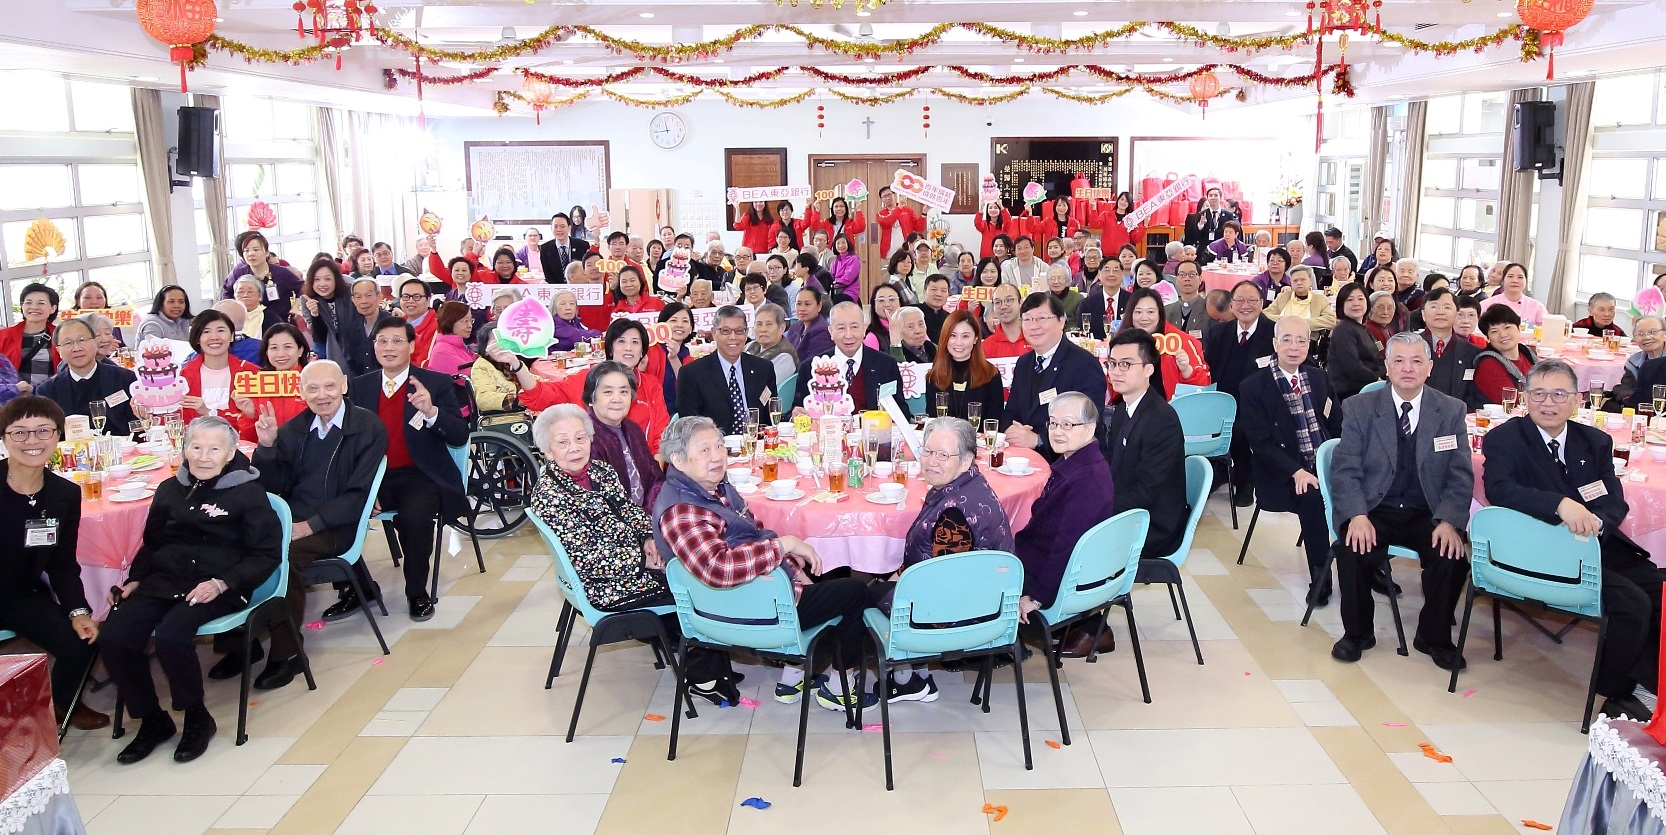 BEA Celebrates Its Centenary with the Elderly